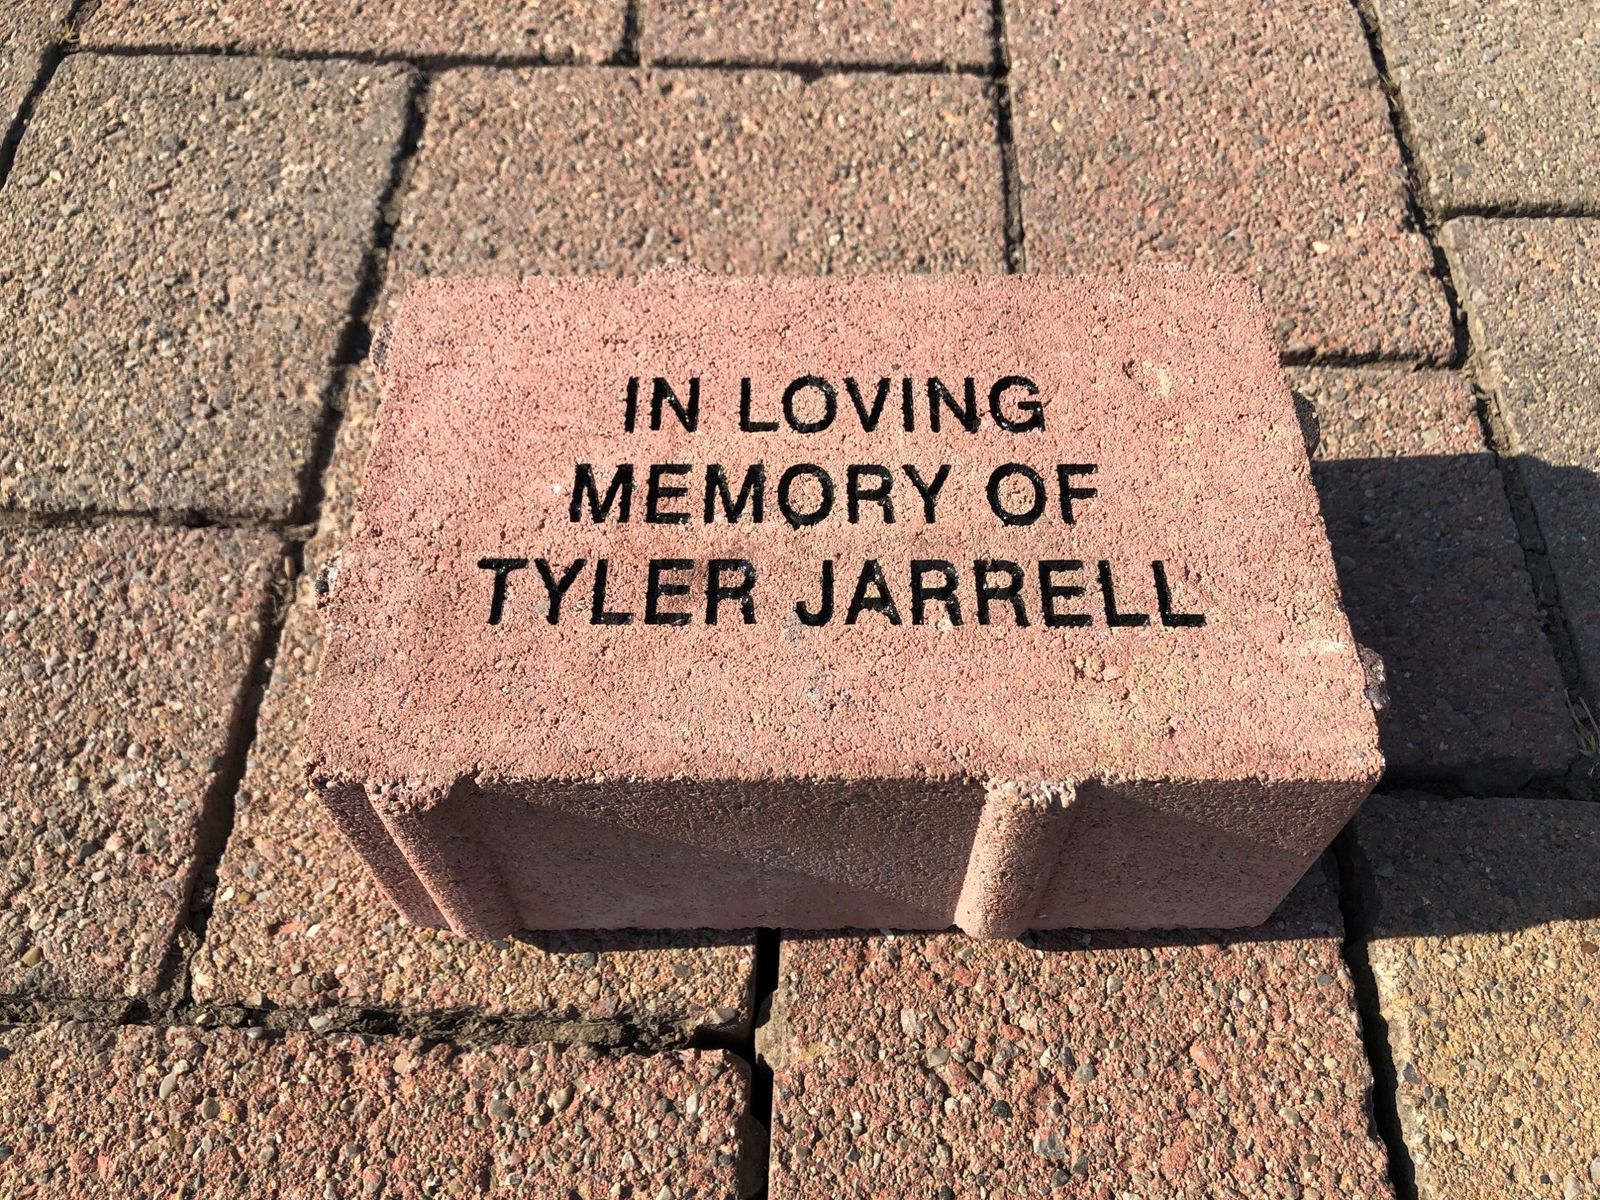 Tyler Jarrell, 18, died opening day of the Ohio State Fair in 2017 when the Fire Ball ride broke apart (WSYX/WTTE).